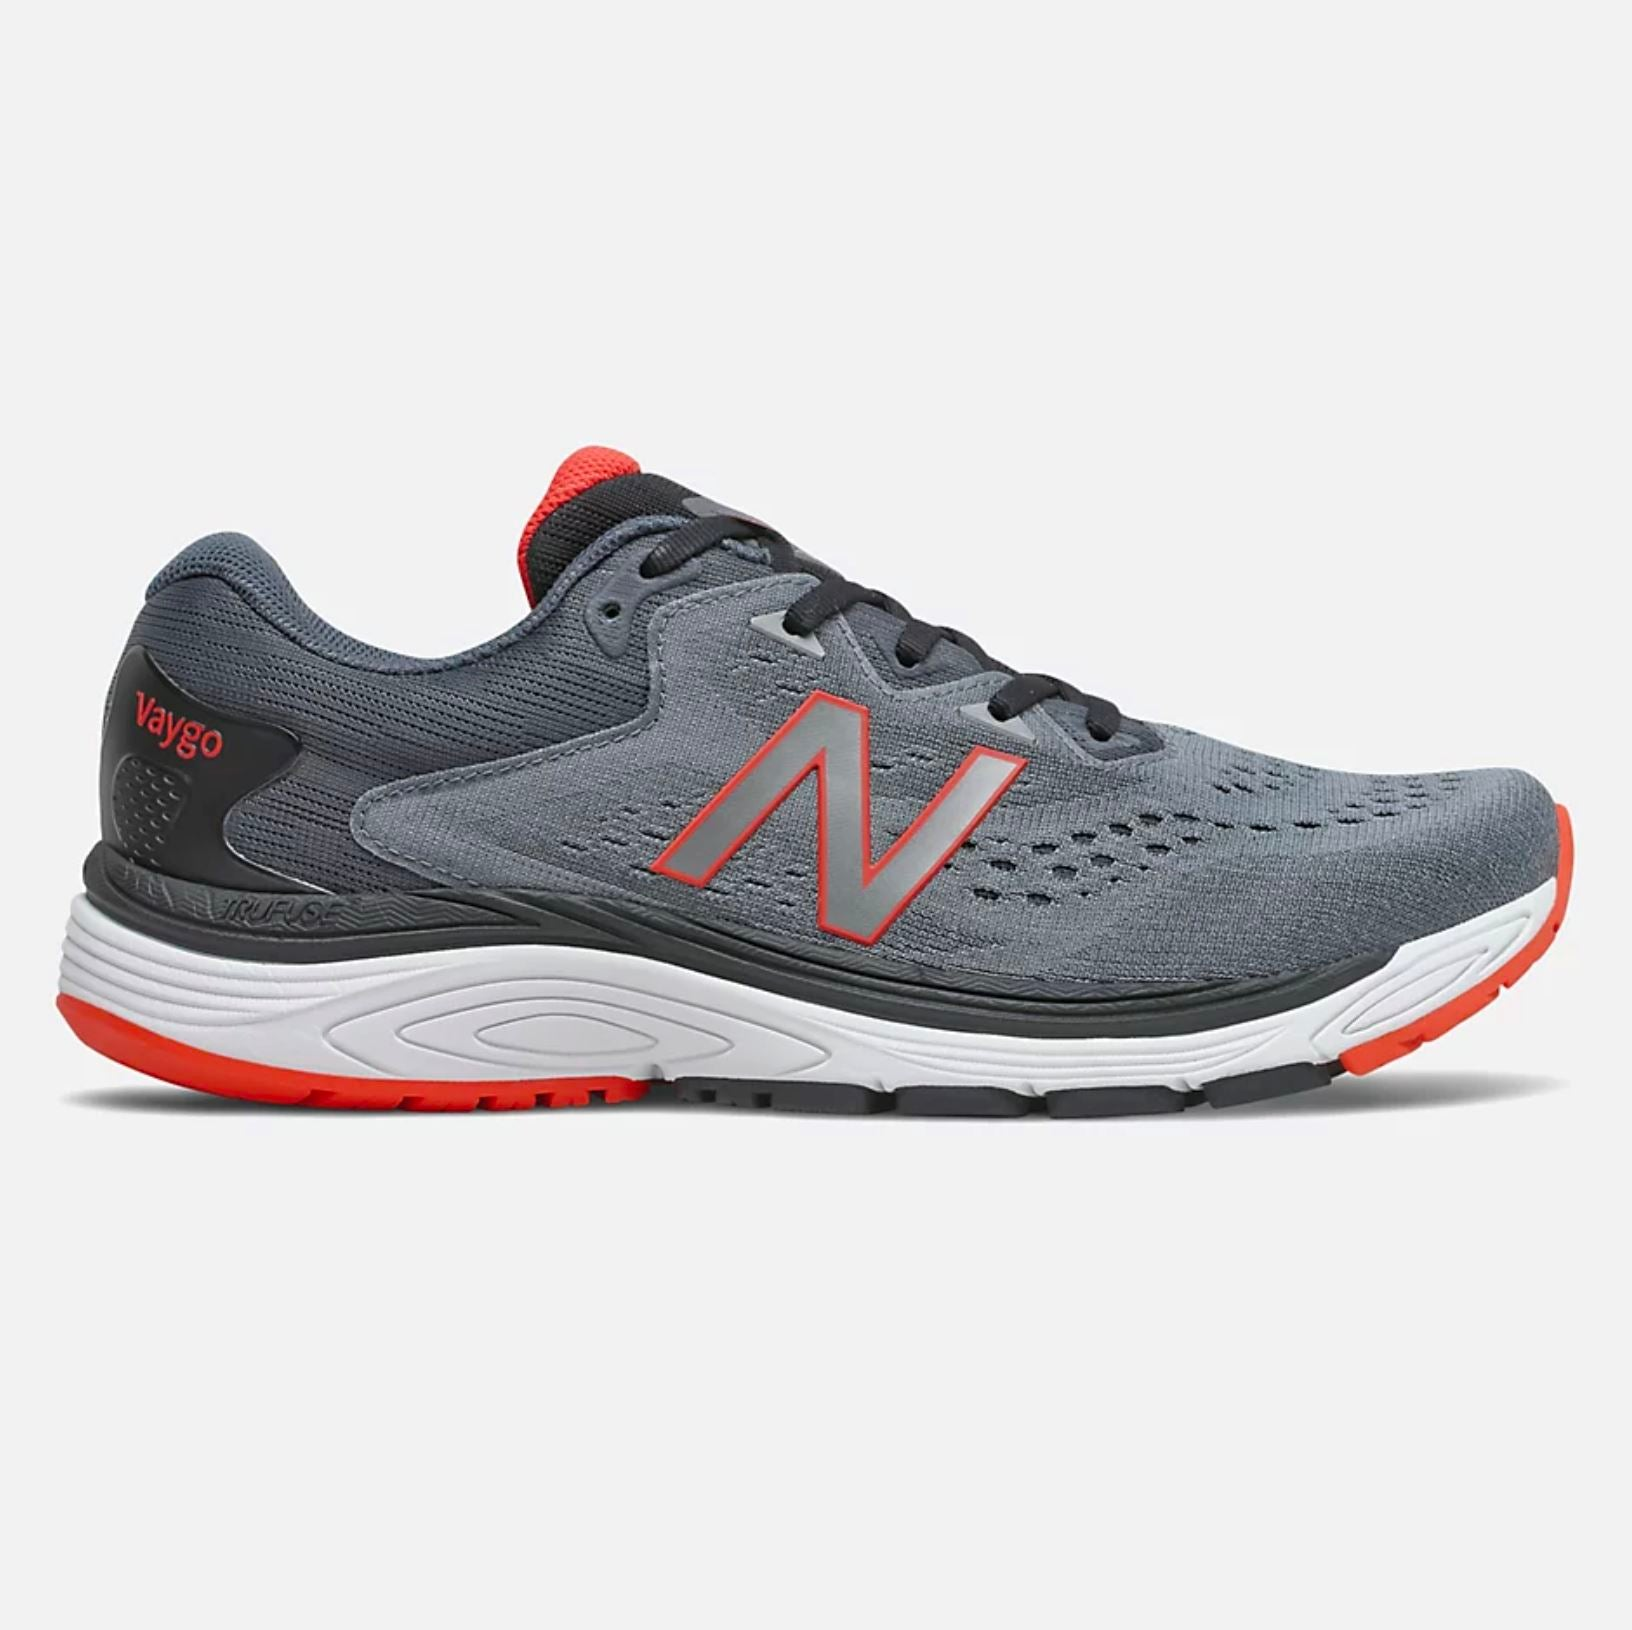 New Balance Men's Vaygo Running Shoe - Black/Ghost Pepper SP-Footwear-Mens New Balance